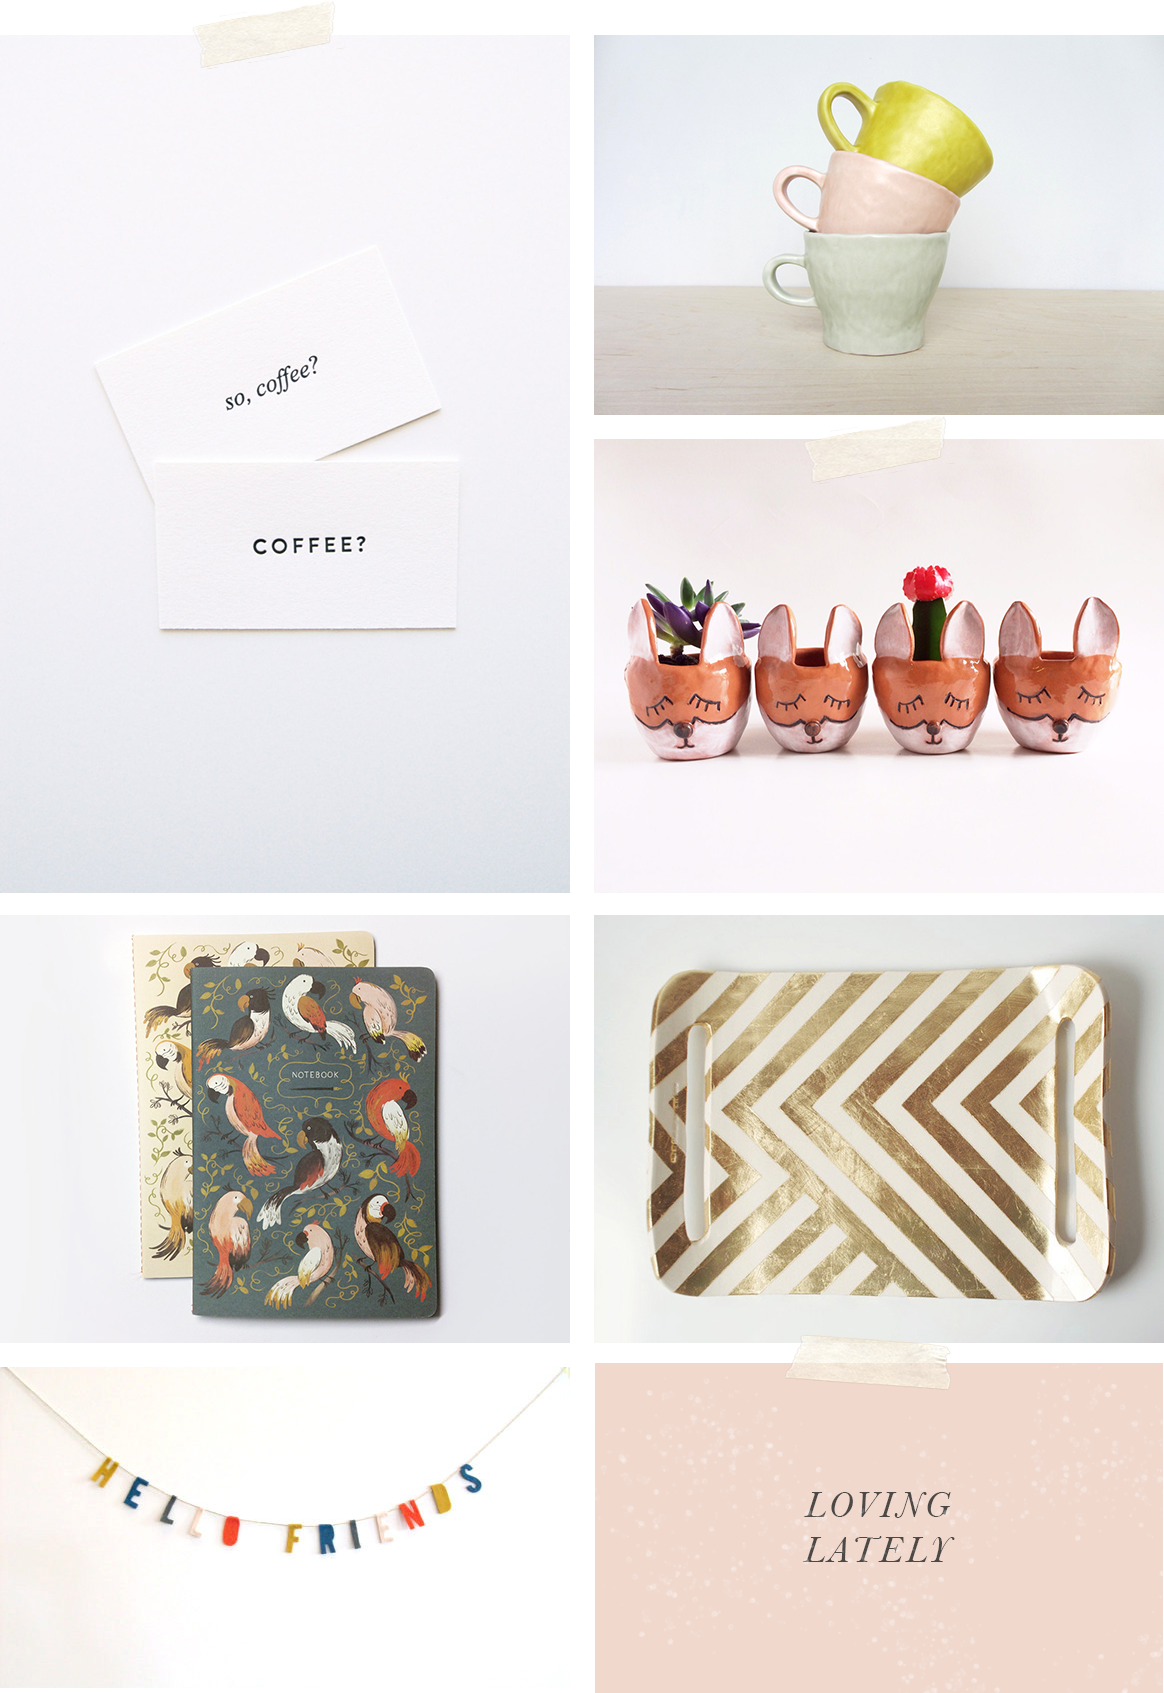 coffee date cards  by in haus press /  parrot journals  by quill and fox /  hello friends felt banner  by tastefully mismatched /  ceramic pinched mugs by elizabeth benotti /  ceramic fox planter  by pottery lodge /  gold zag tray  by up in the air somewhere